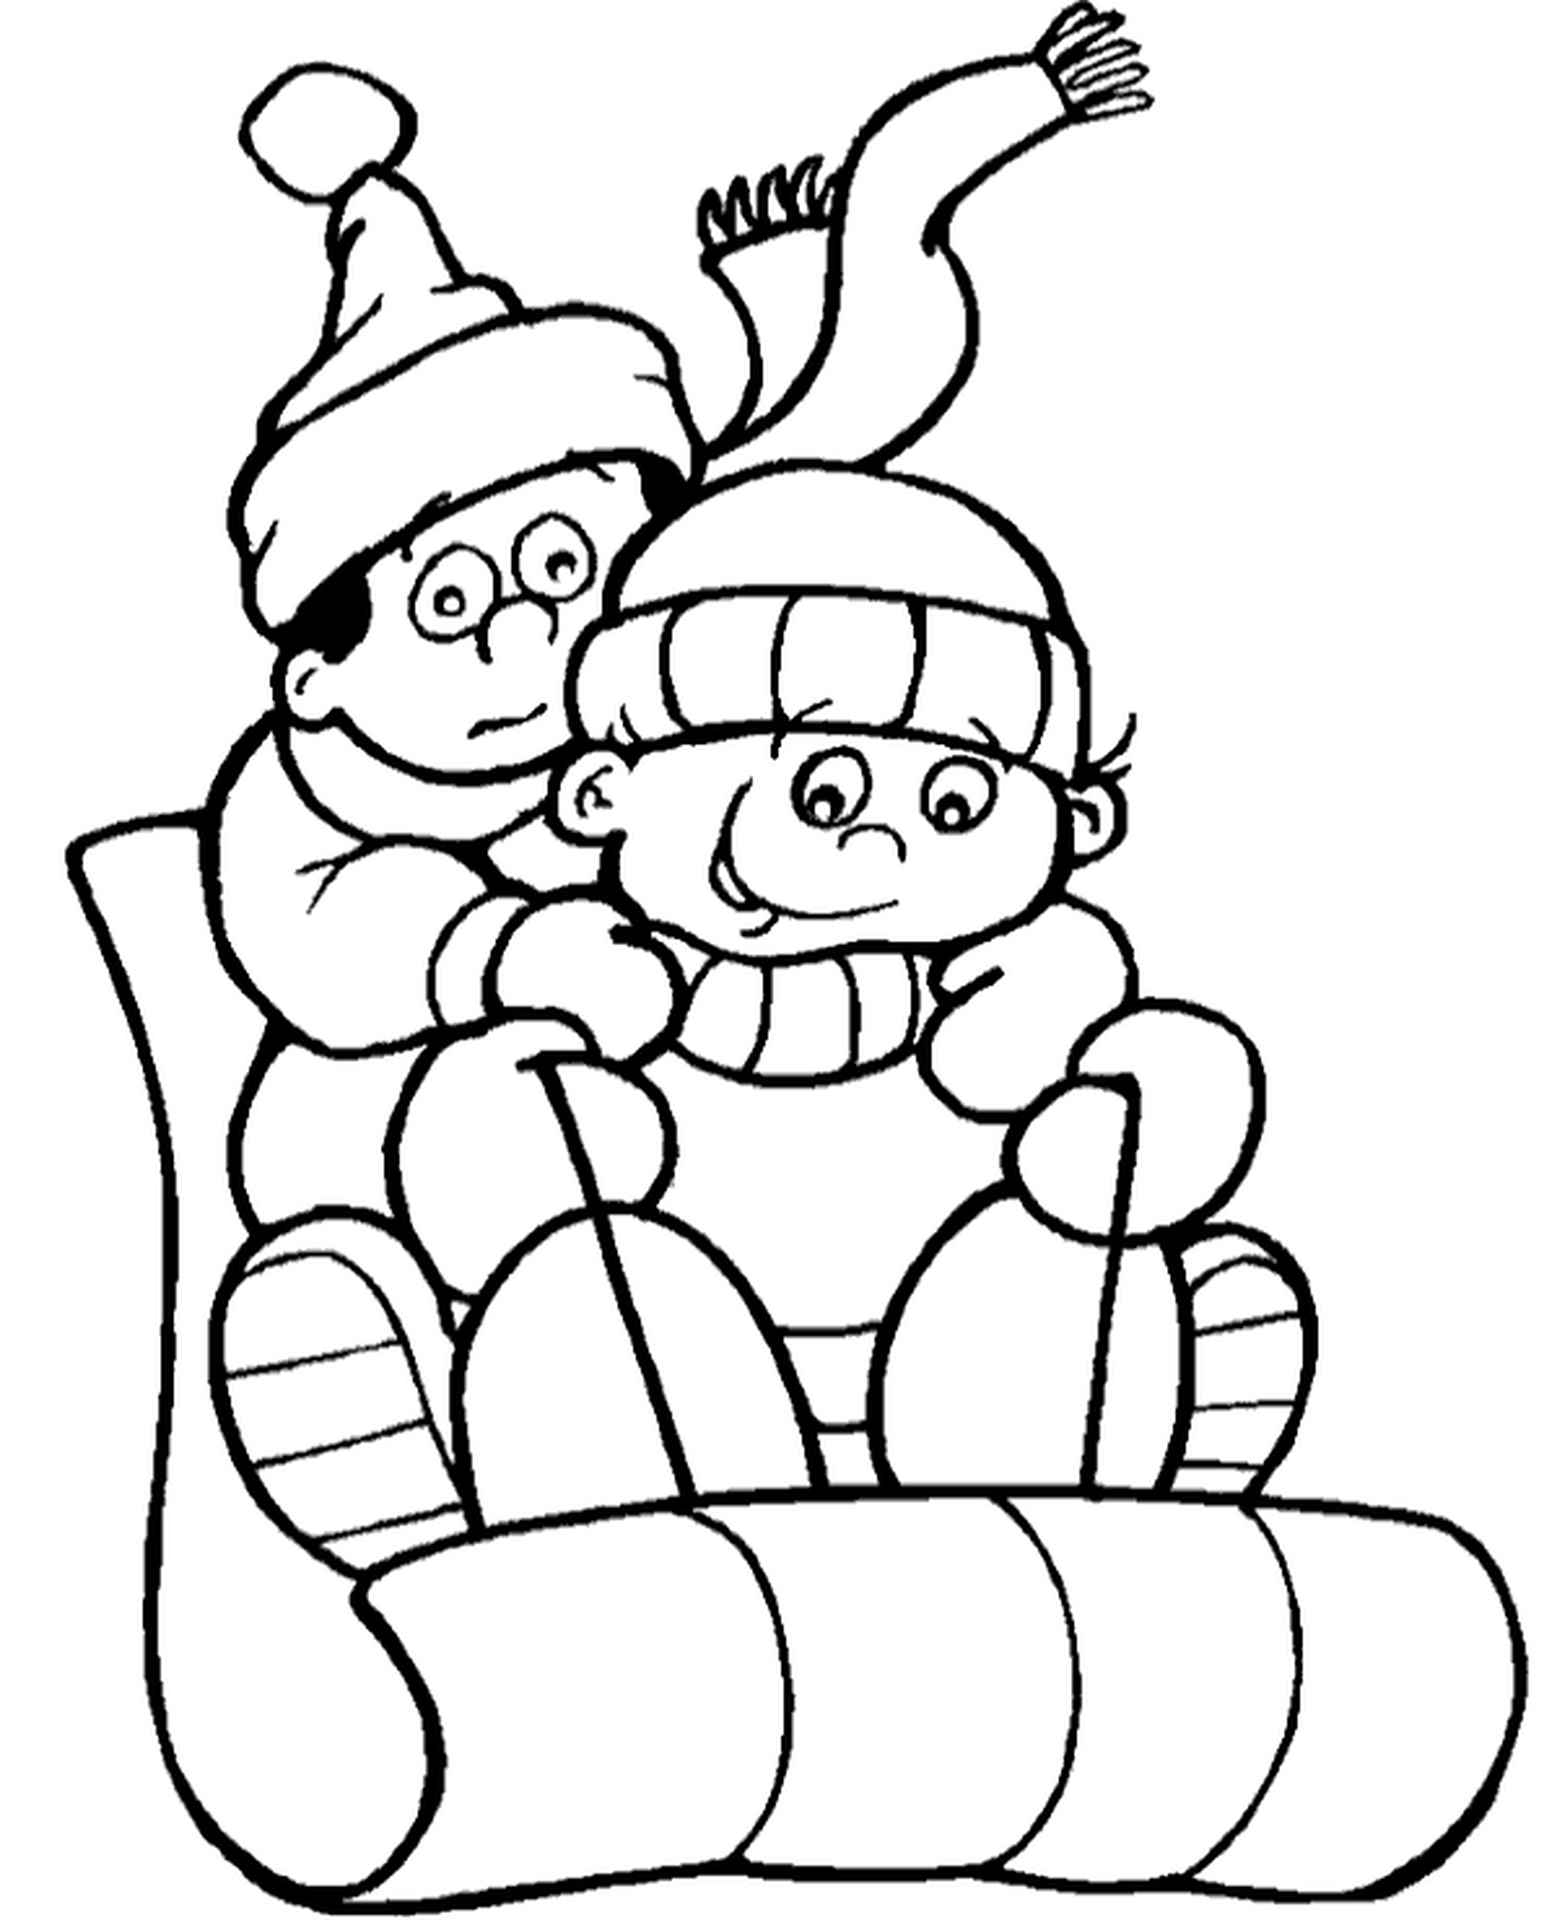 Boys Sledging Coloring Book For Kids